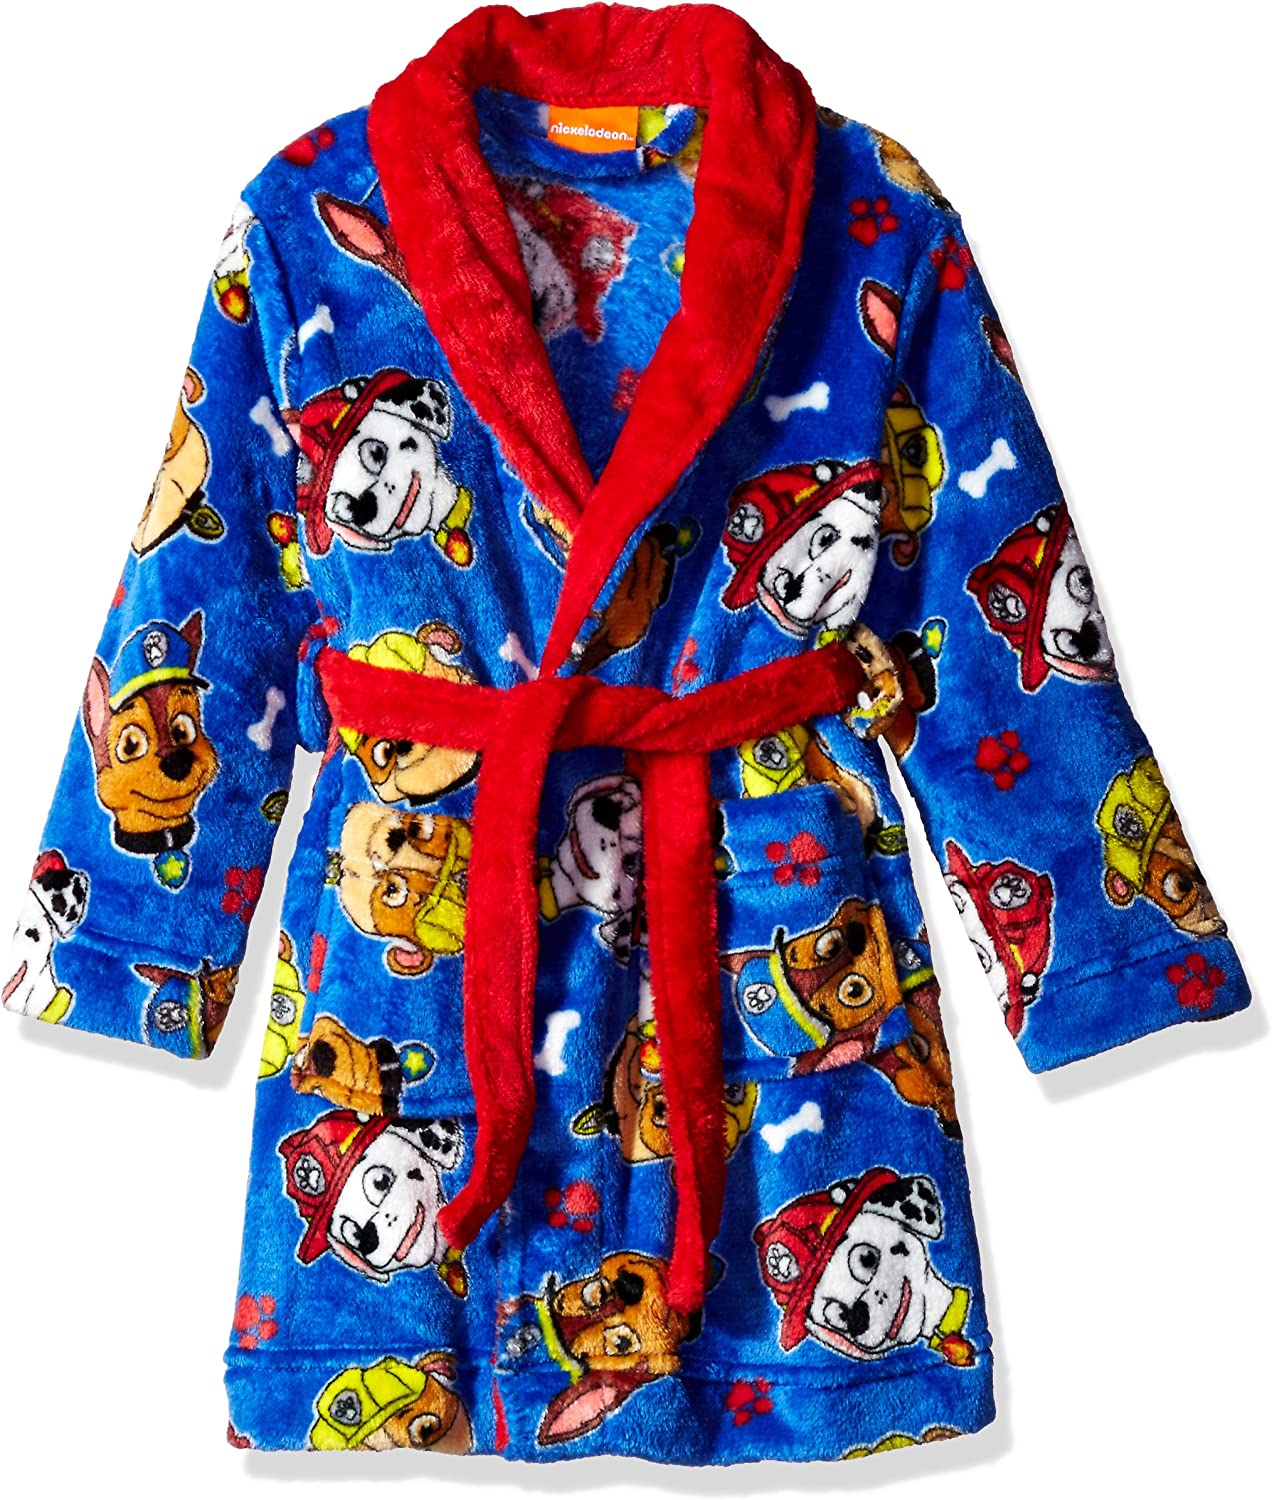 Paw Patrol Character Toddler Boys Luxe Fleece and Sherpa Bathrobe Robe